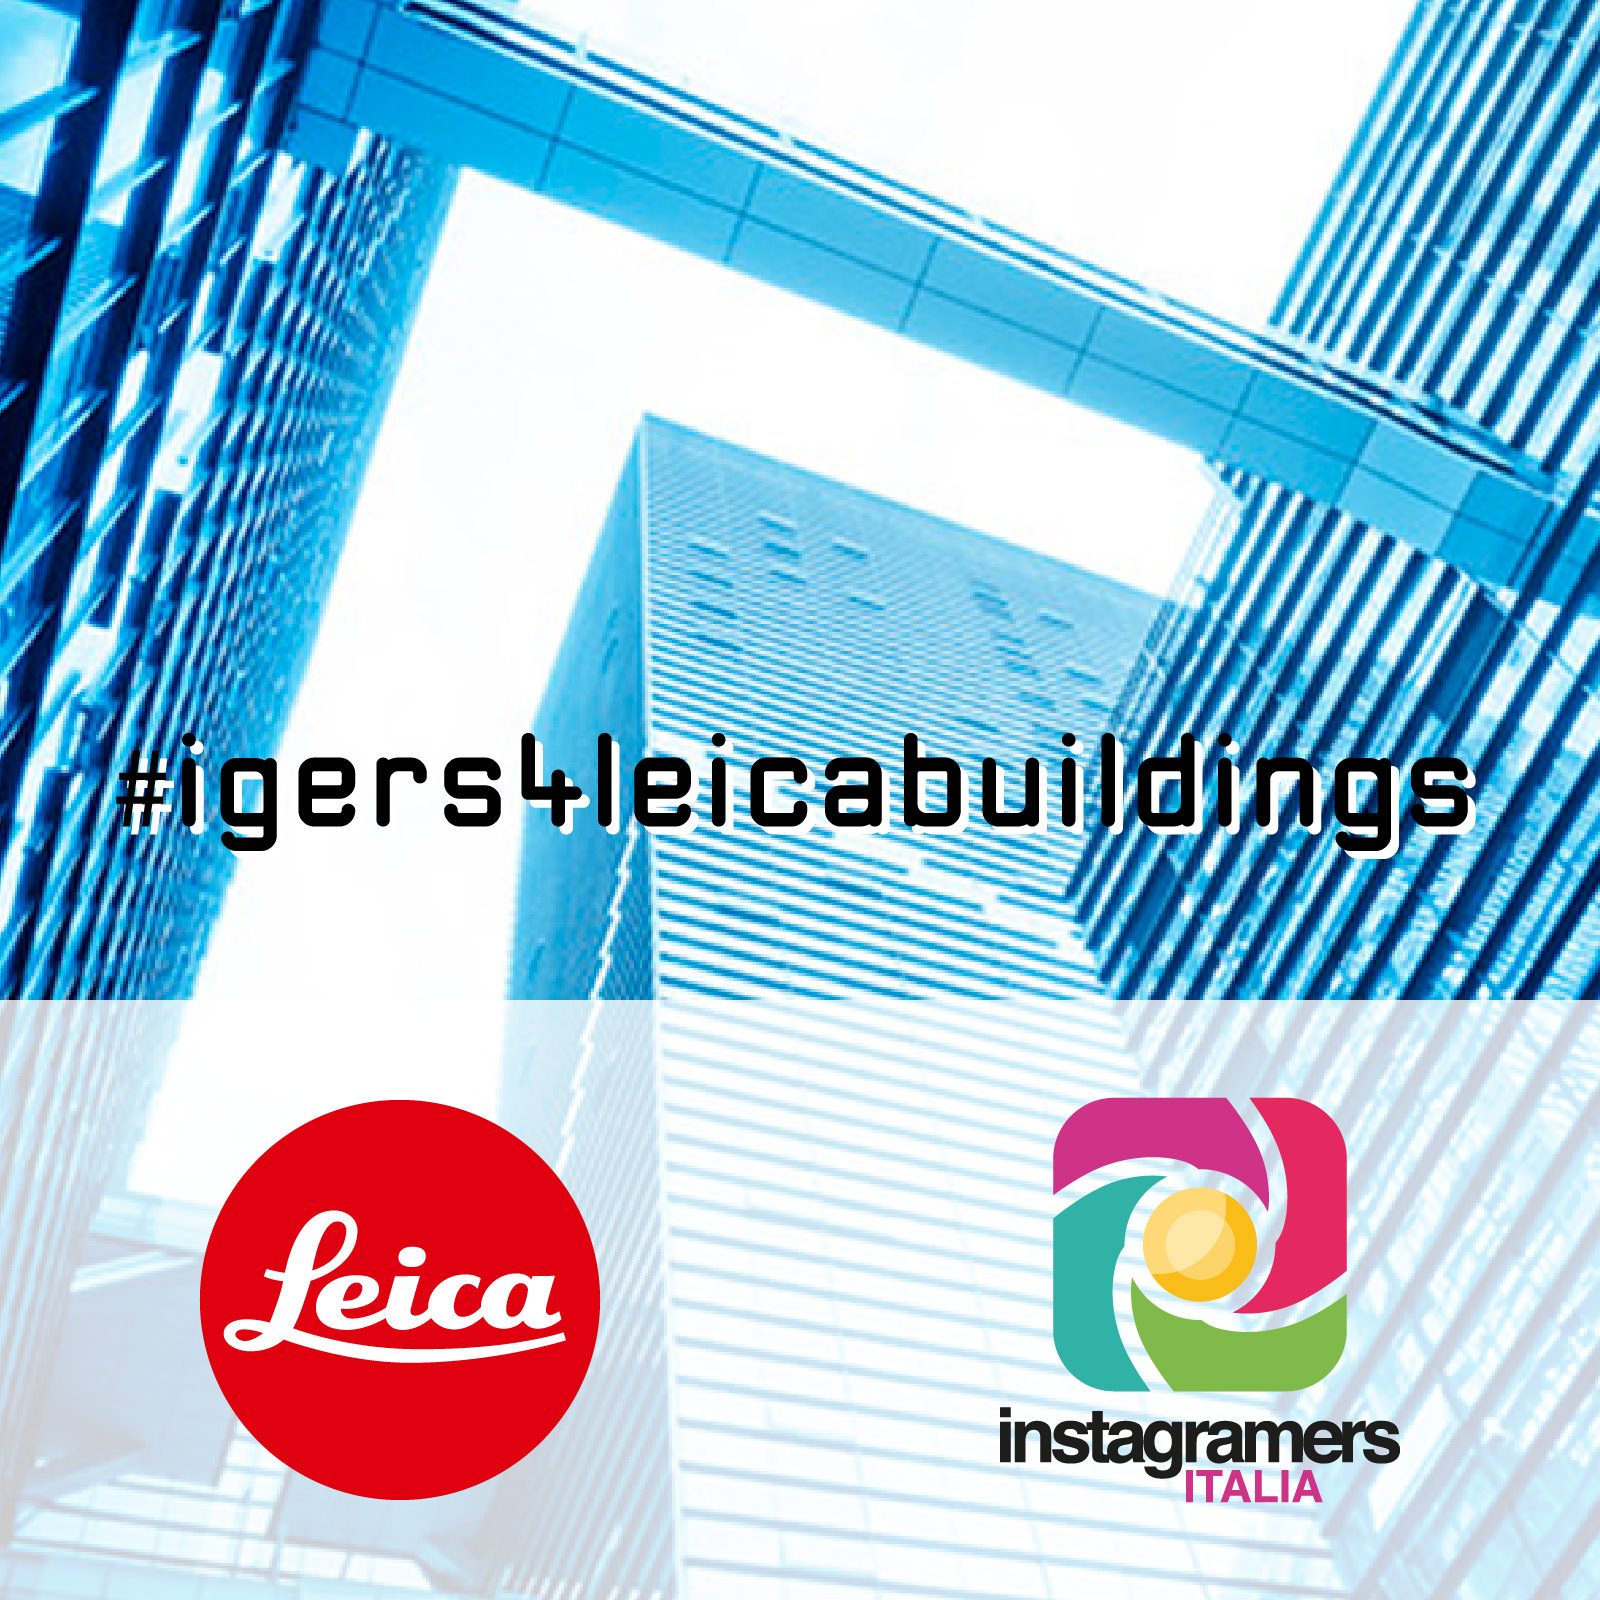 igers4leicabuildings